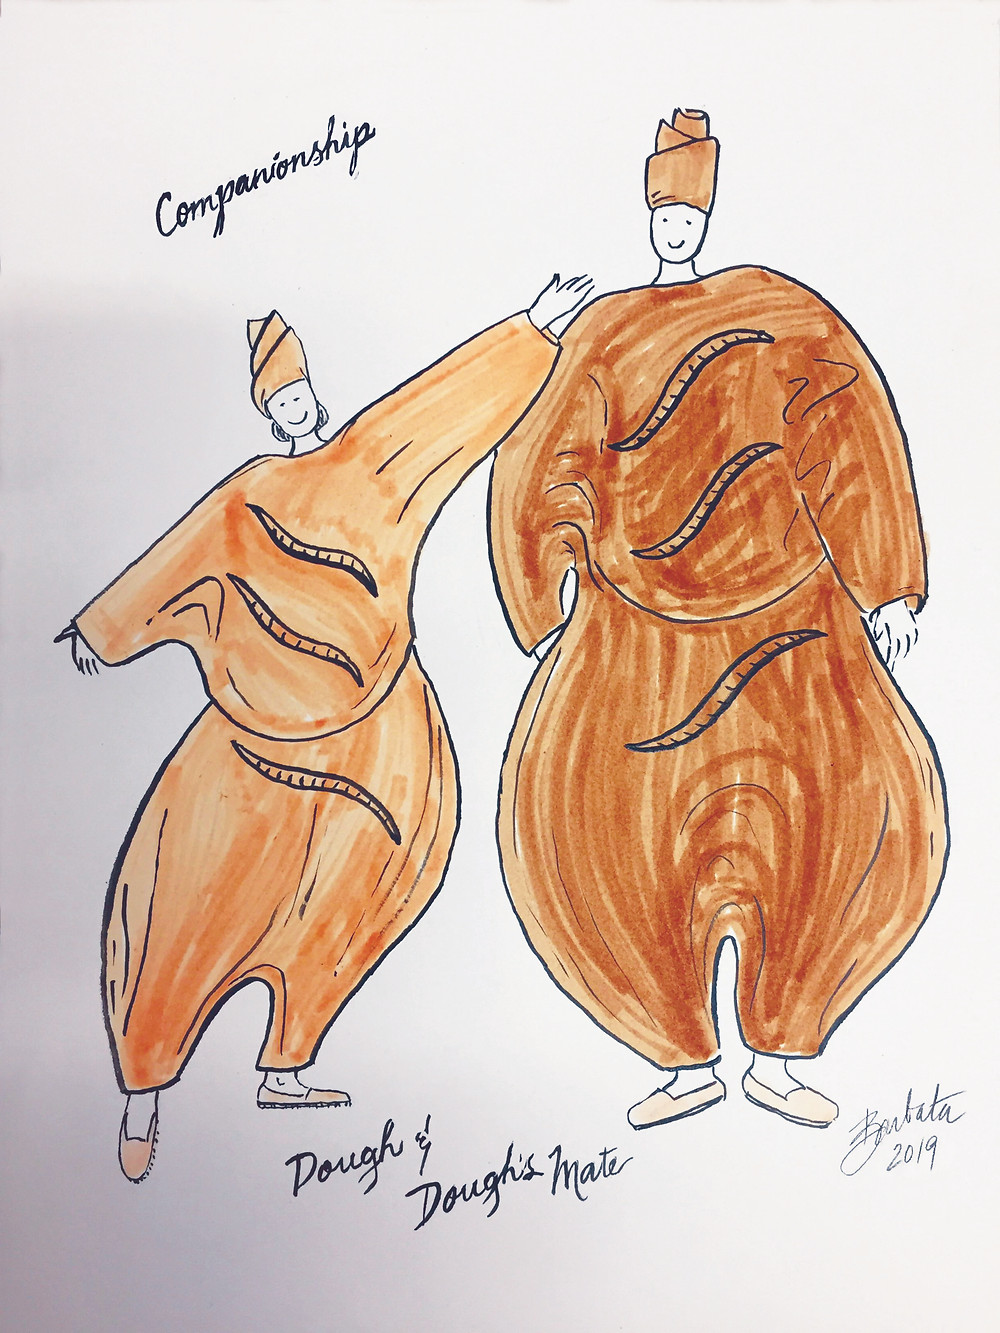 Concept Drawings of Costumes from 'Companionship,' Laura Anderson Barbata